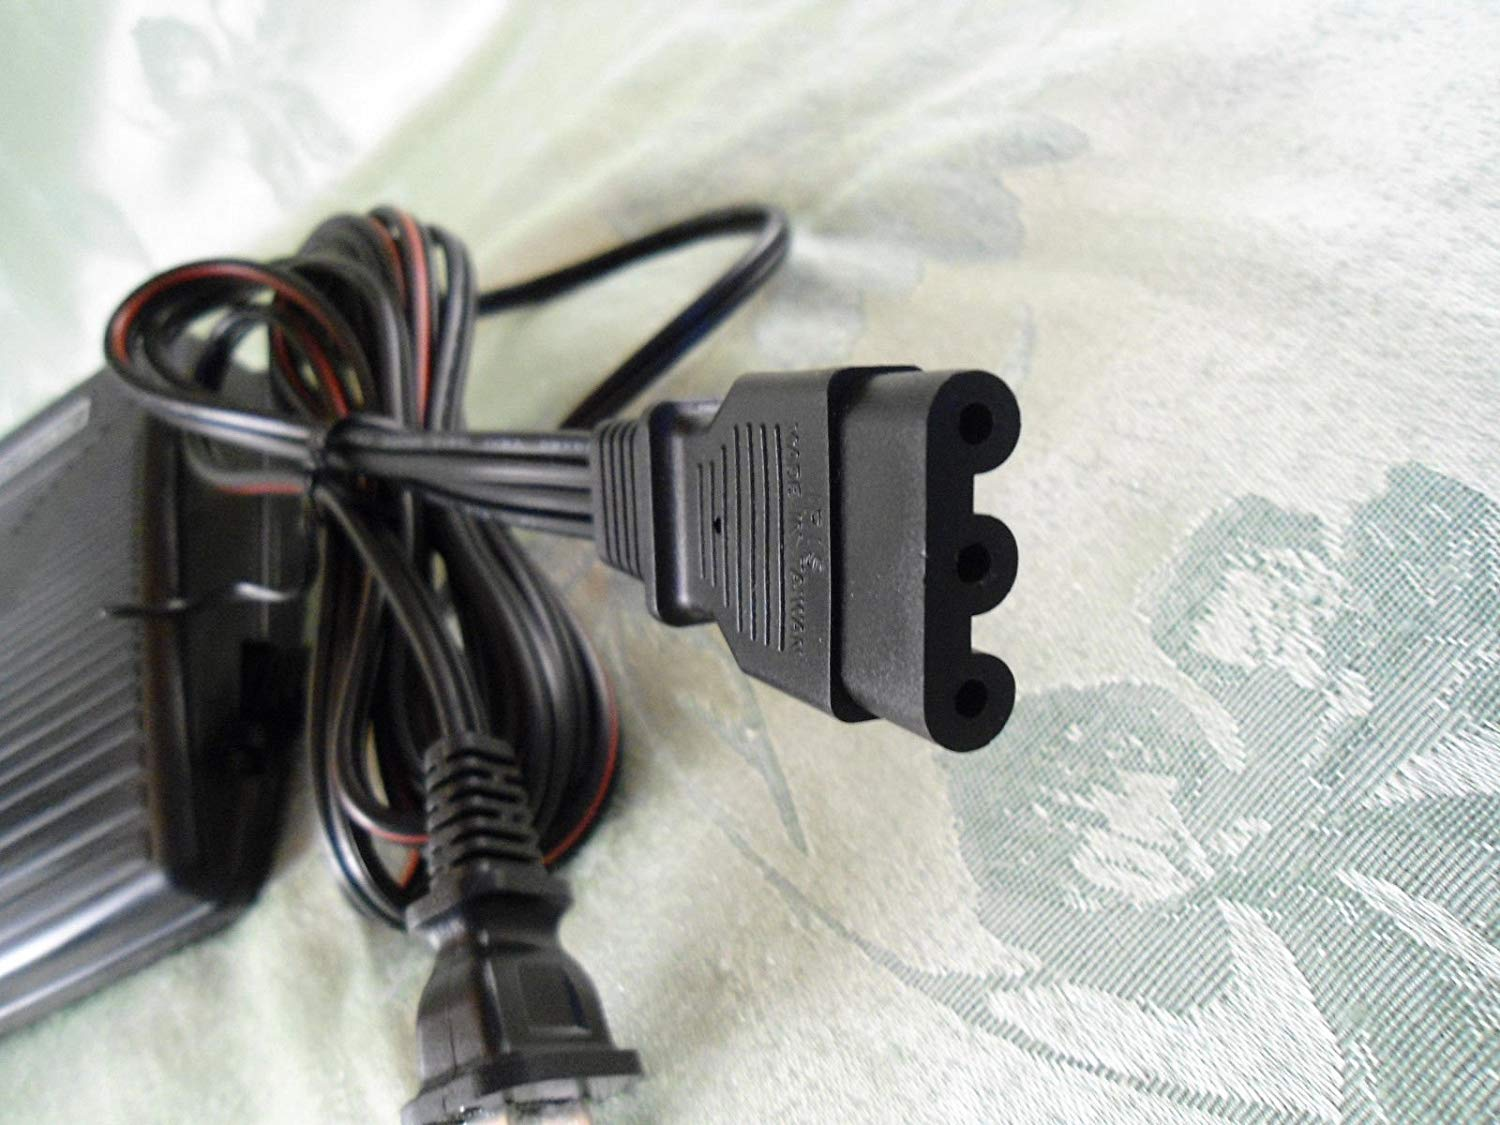 Complete Foot Pedal Cord 033770217 For Kenmore 385 Sewing Wiring Diagram Series Singer From Sears